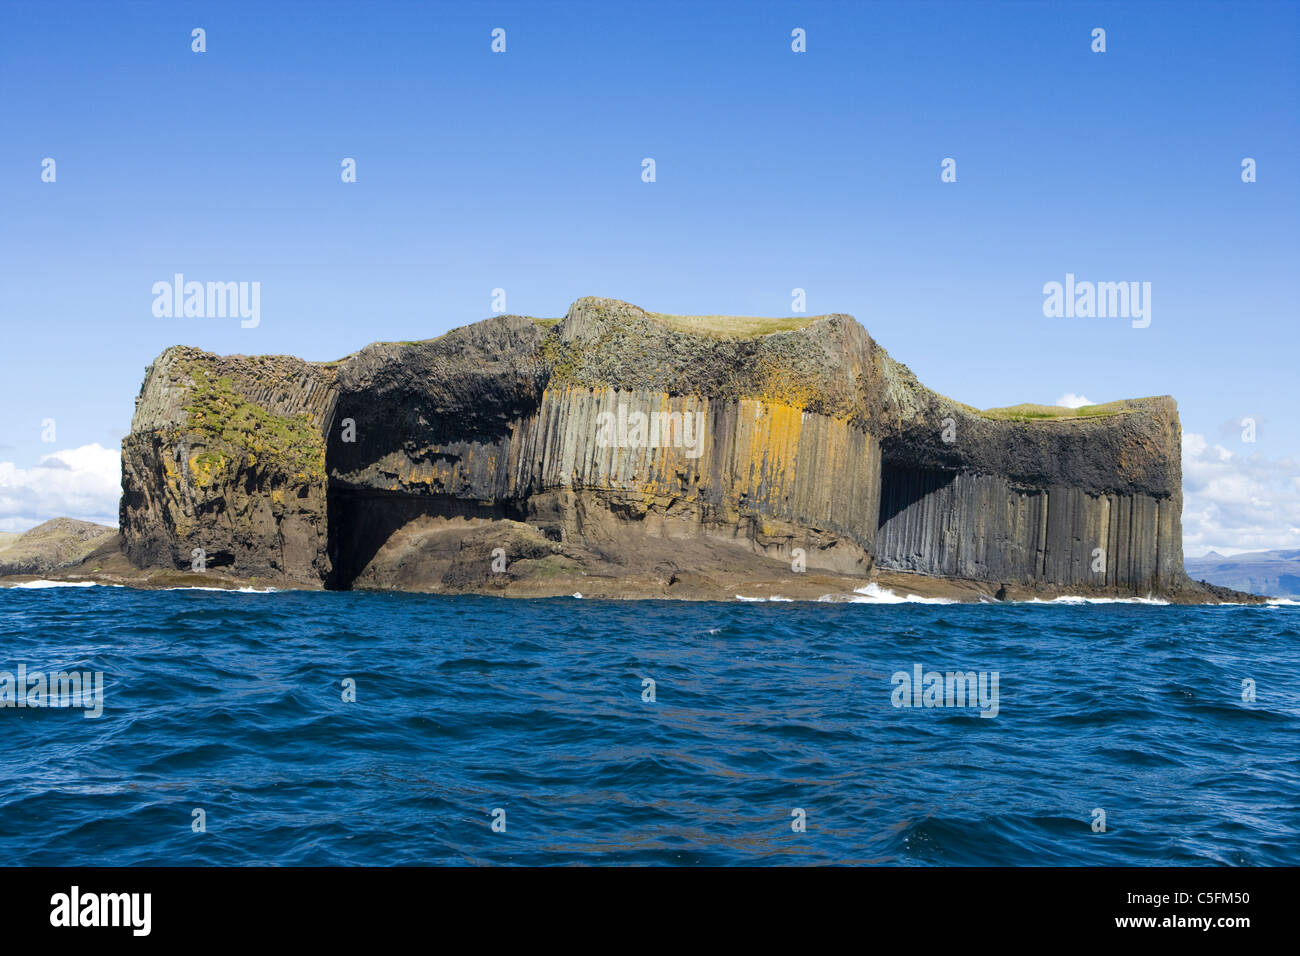 Staffa. McKinnon's Cave on left, entrance to Boat Cave on right. Scotland, UK. - Stock Image